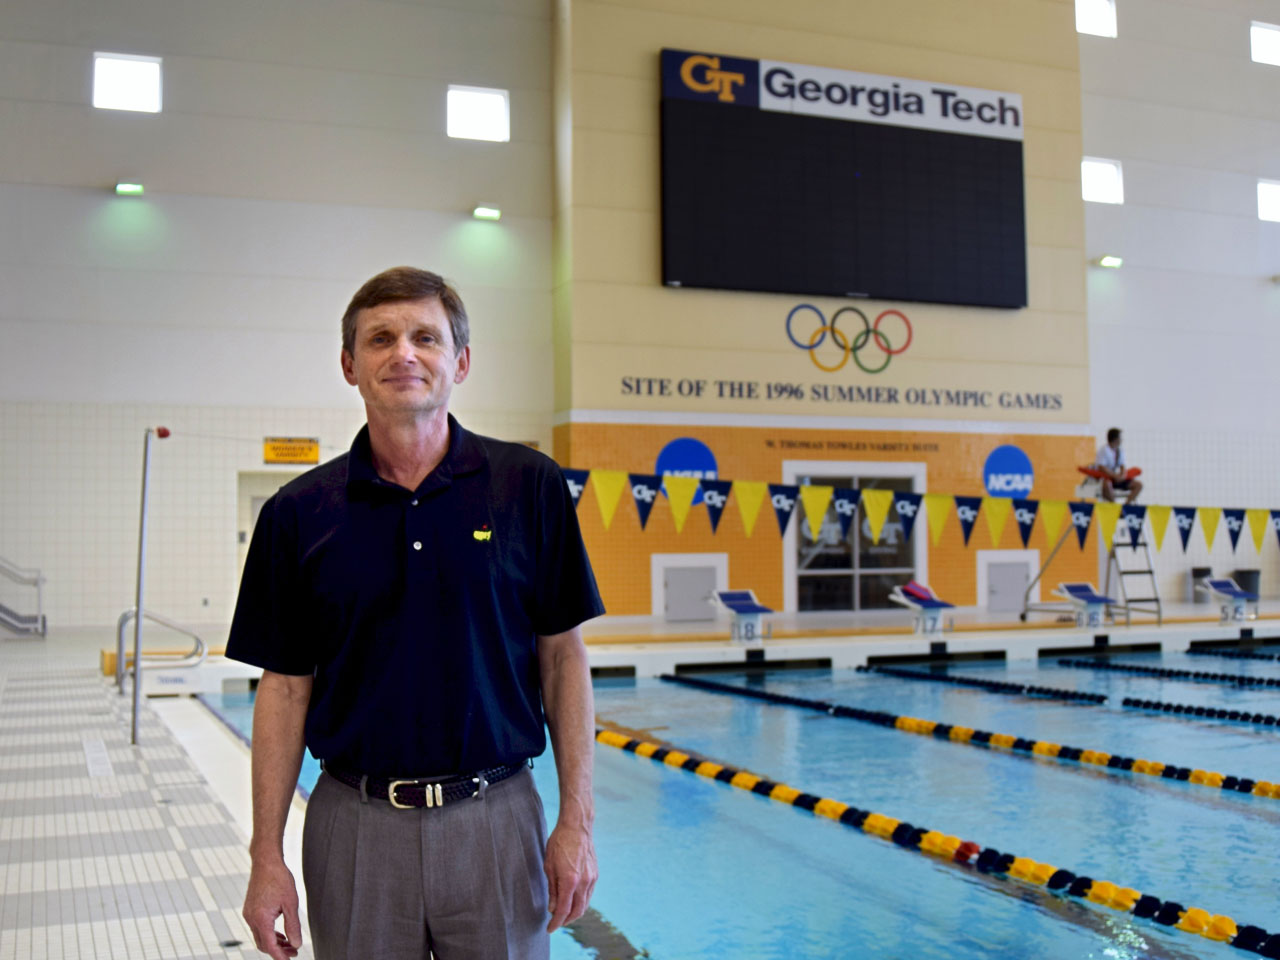 """""""I believe we got a pretty good return,"""" says Georgia Institute of Technology campus recreation director Mike Edwards, who managed the aquatics center during the 1996 Atlanta Olympics. (Alison Guillory for WBUR)"""